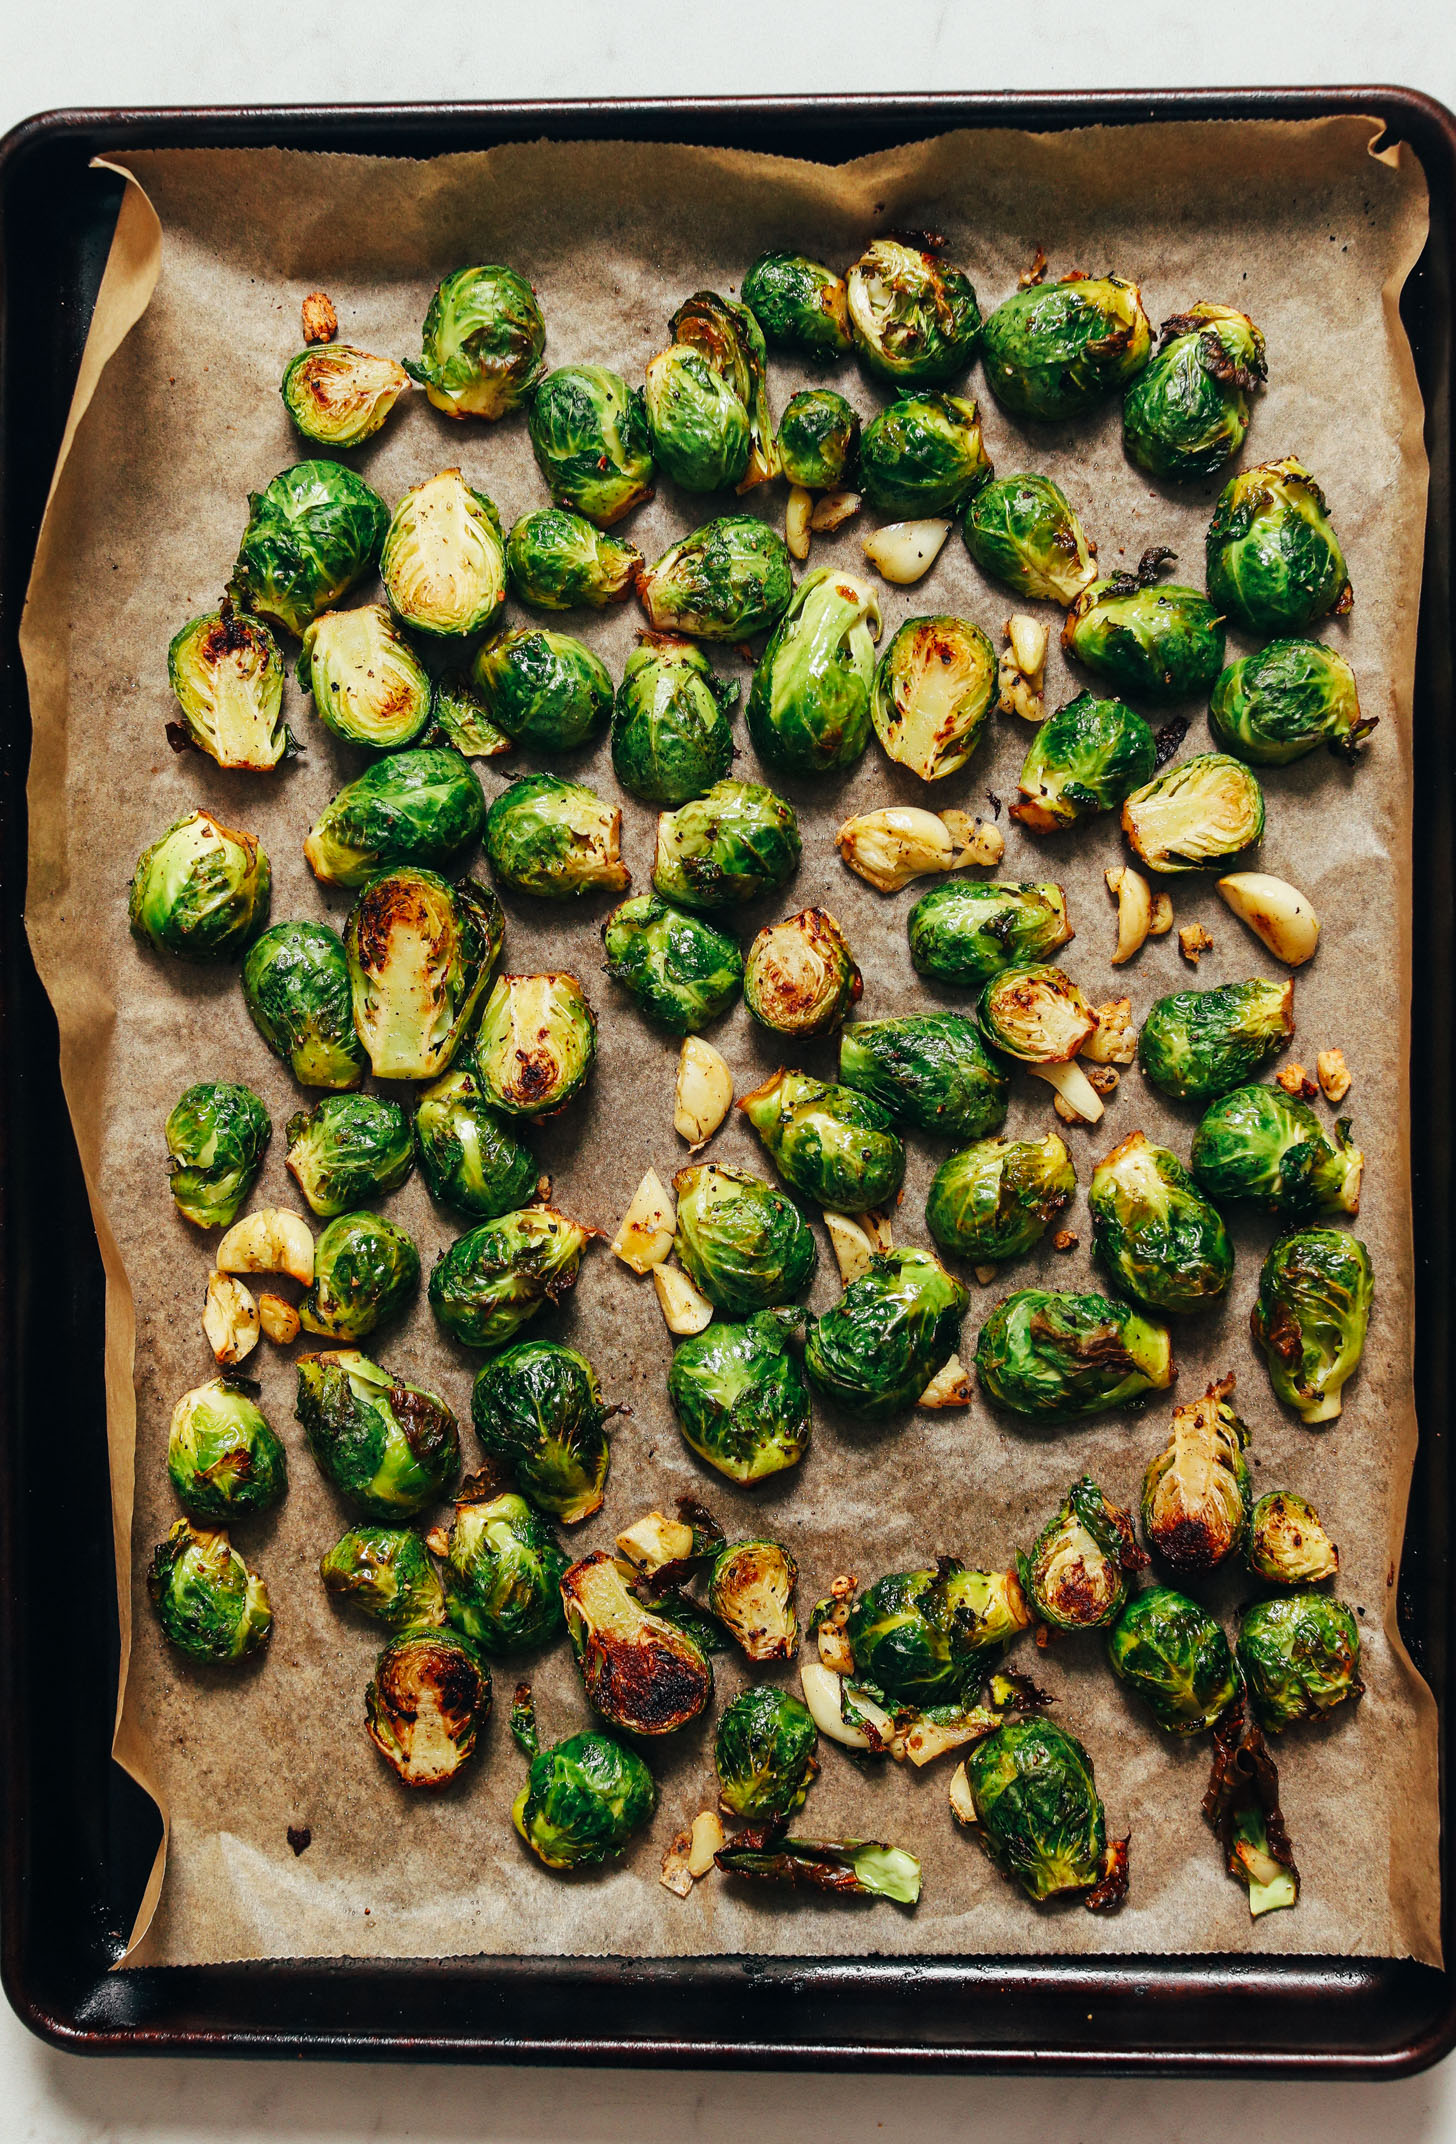 Parchment-lined baking sheet of roasted Brussels sprouts